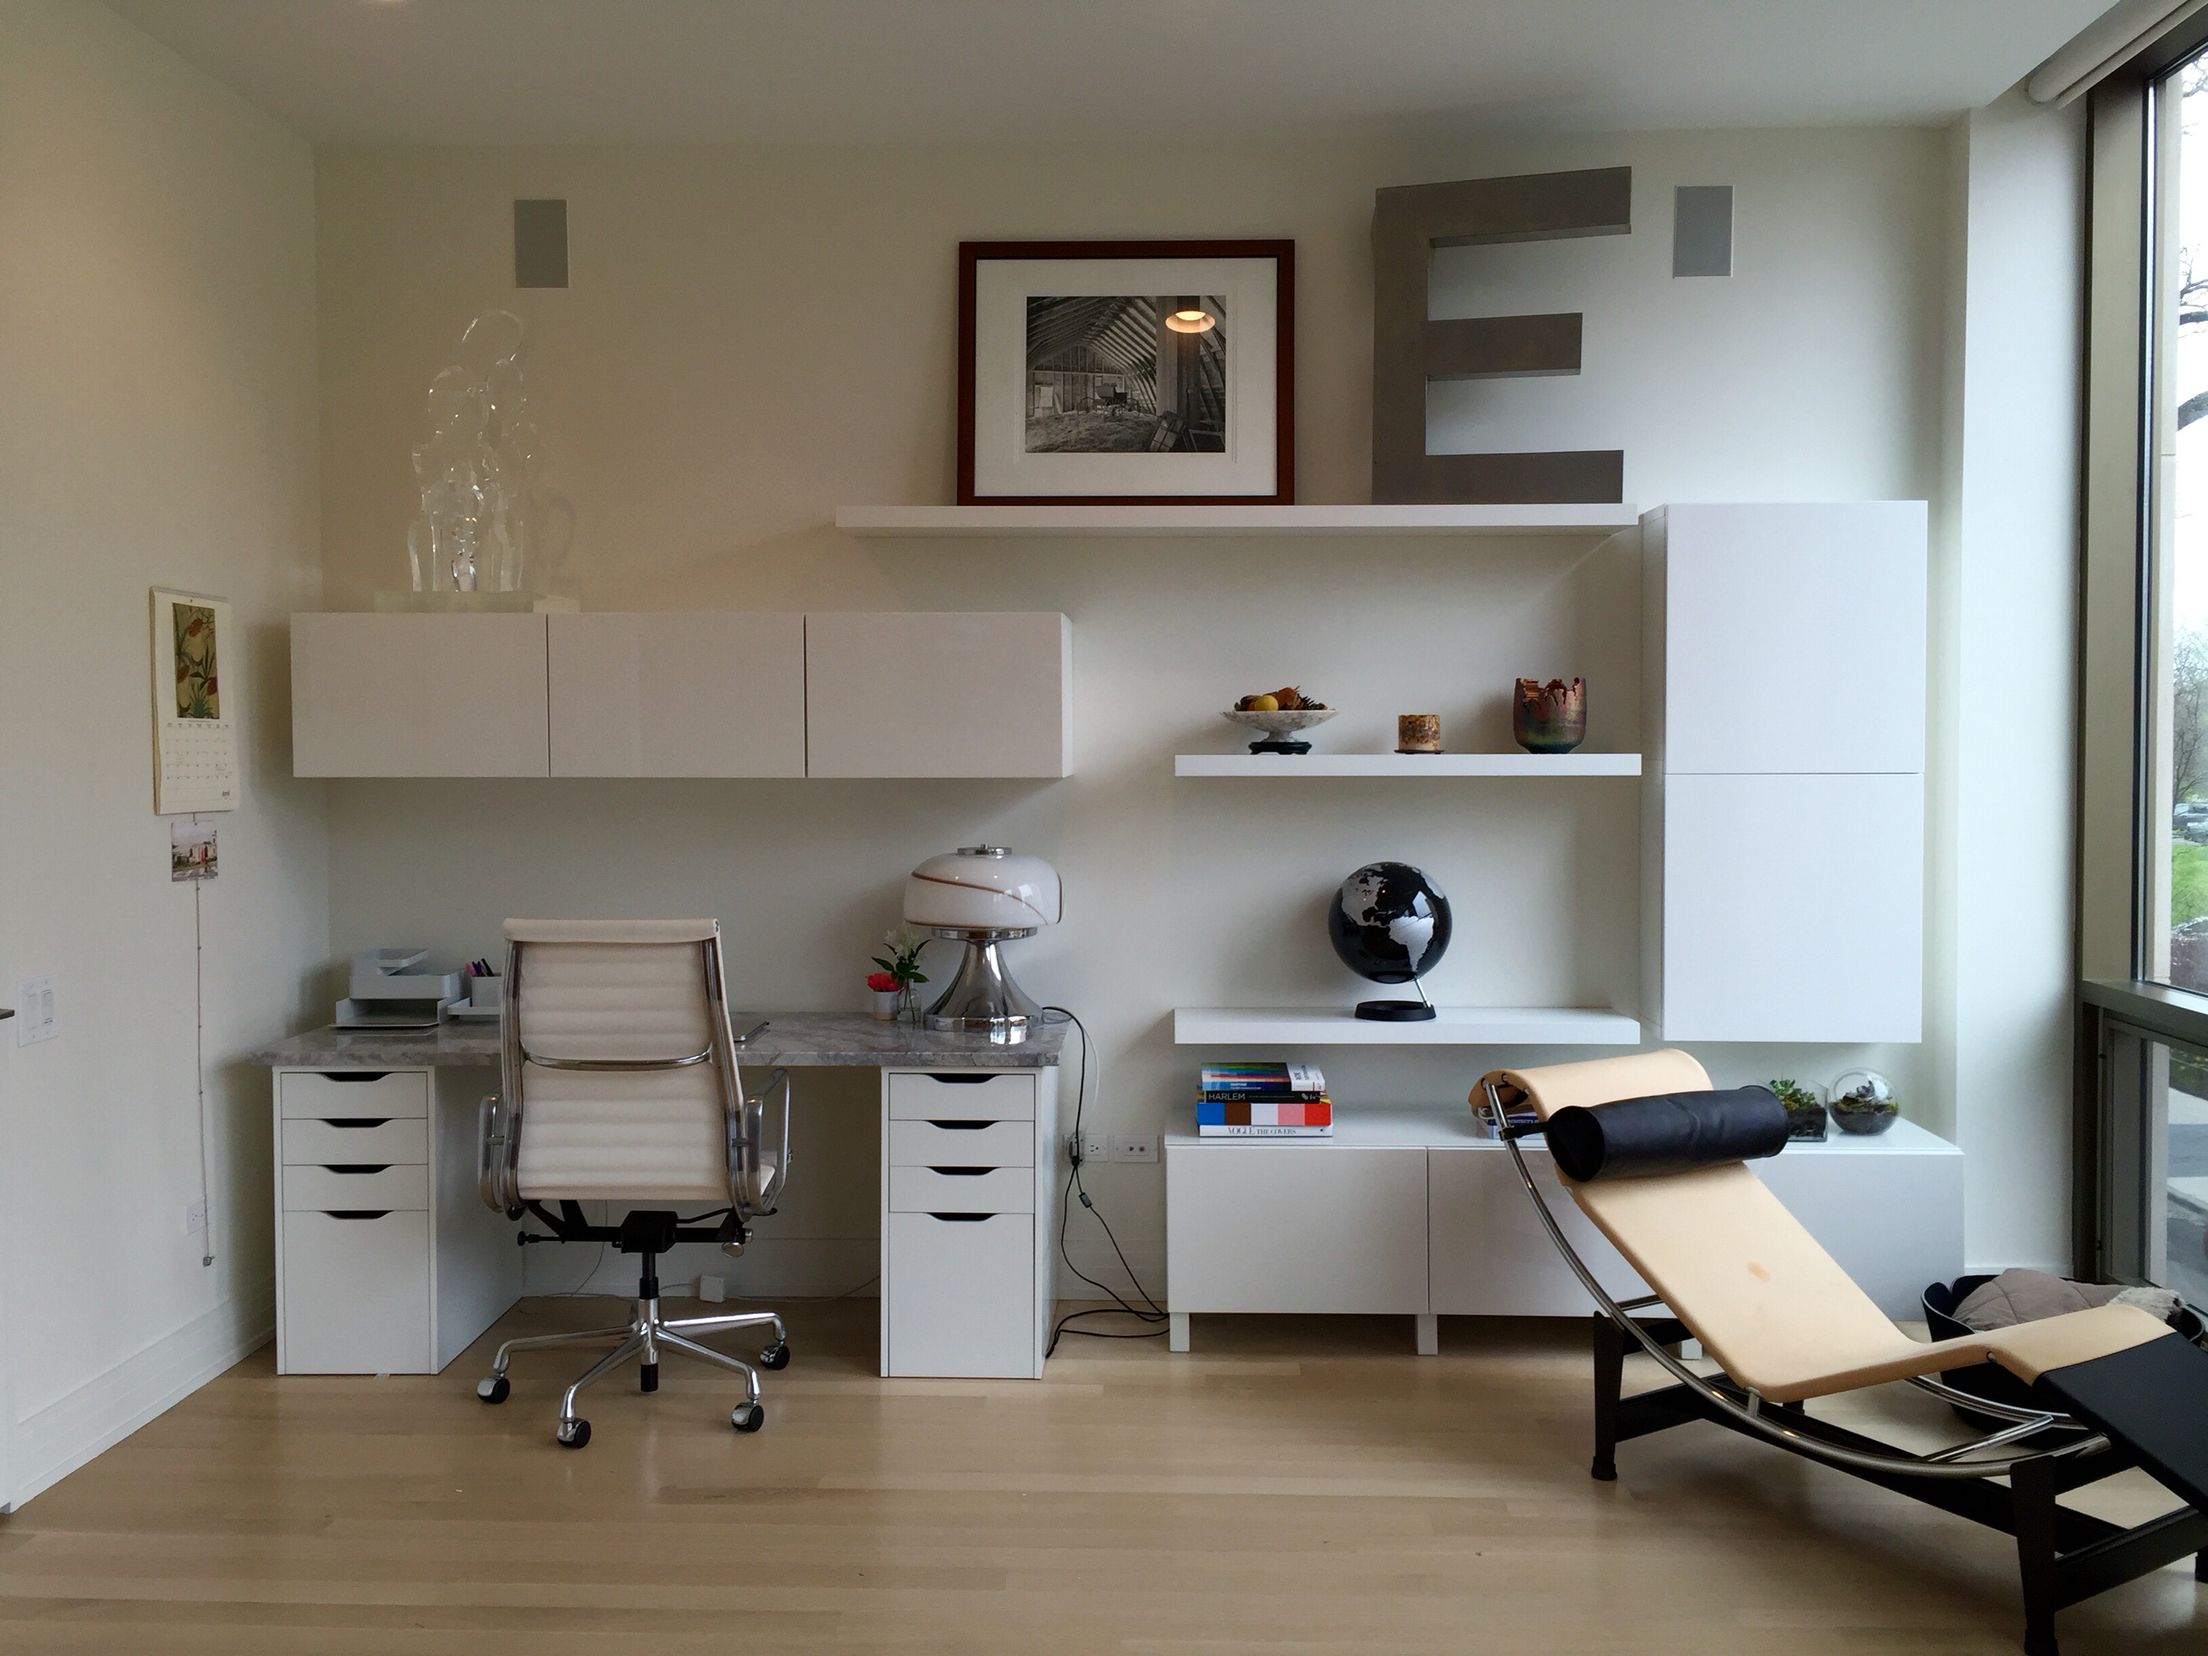 ikea besta office. Classic Ikea Besta Office In Desta Storage Photography Study Room Design Ideas E